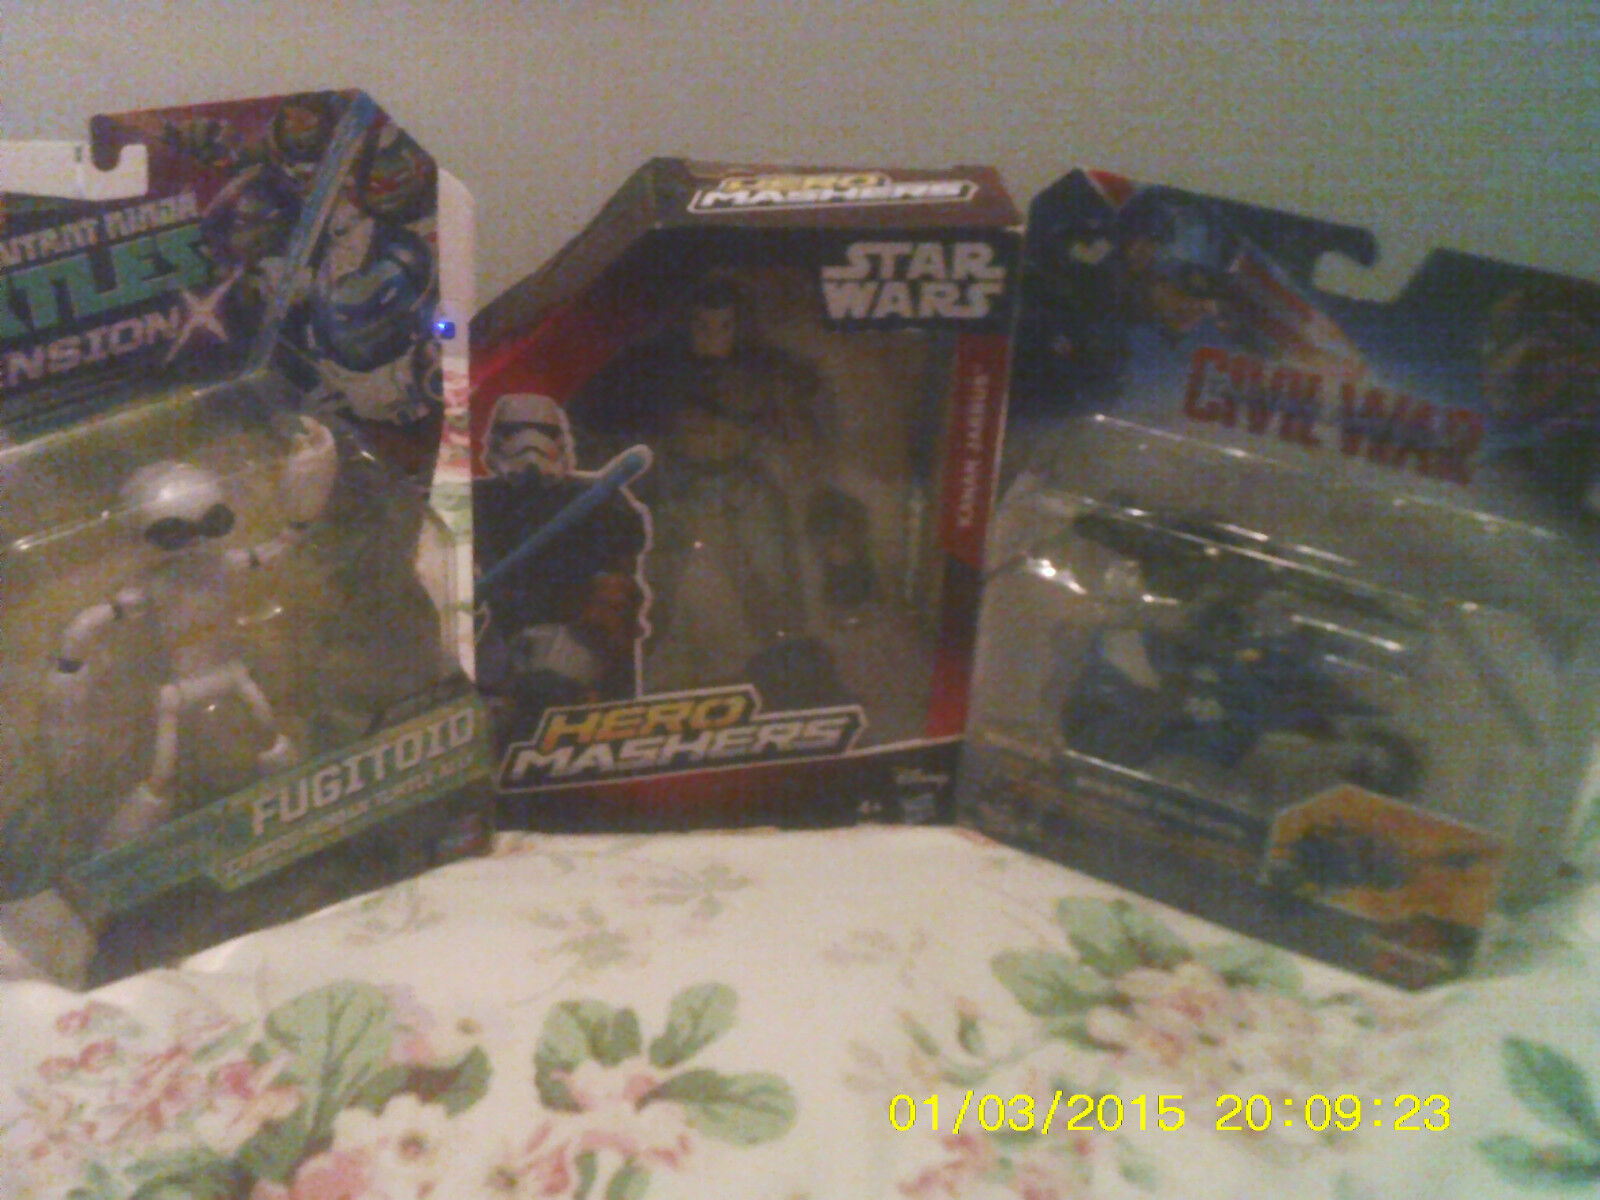 BUNDLE JOB LOT OF THREE ACTION FIGURES STAR WARS CAPTAIN CAPTAIN CAPTAIN AMERICA TURTLES FREE DE dbd844